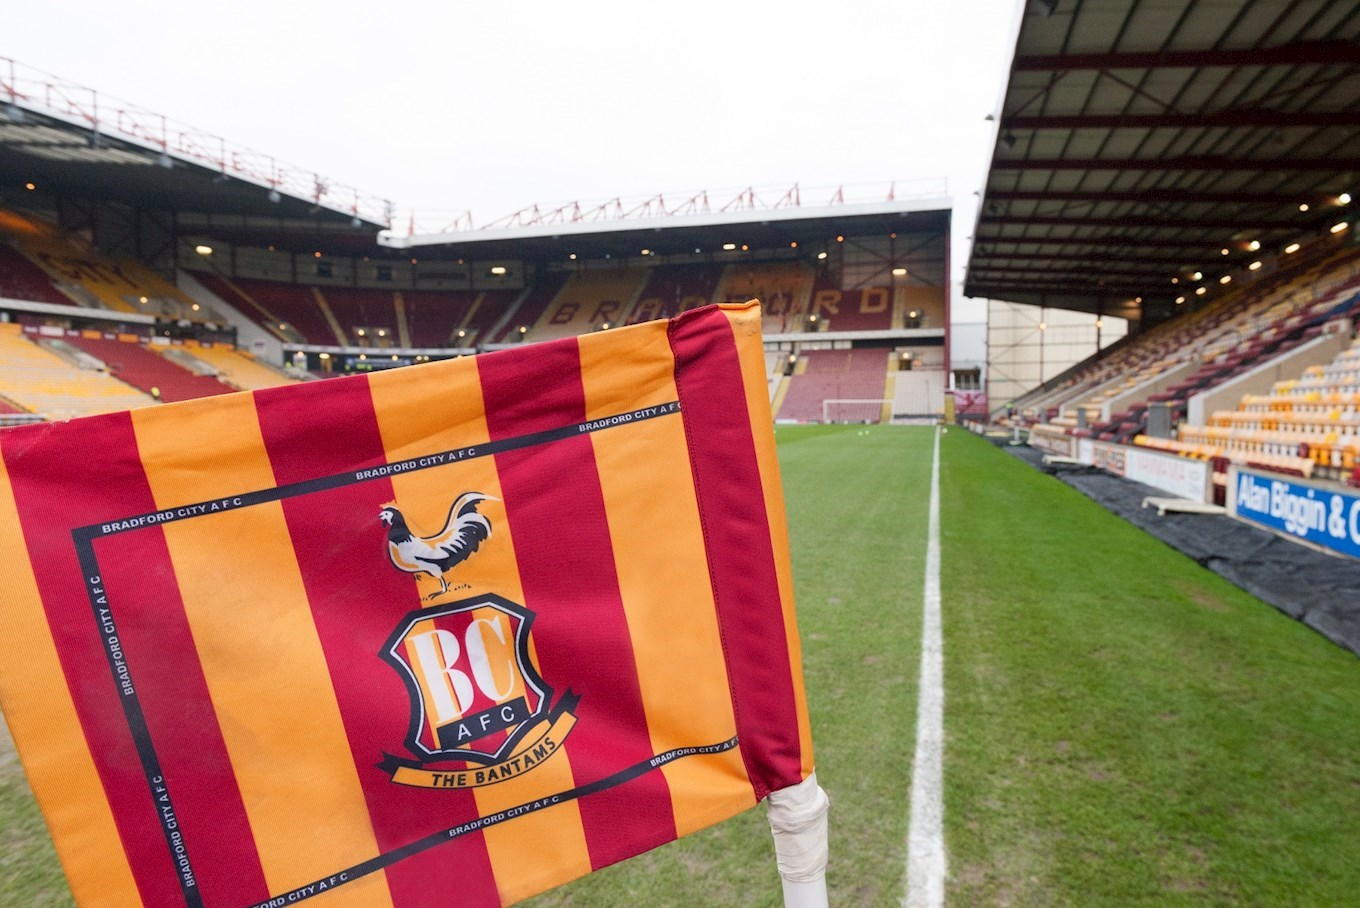 STADIUM ENTRY DETAILS FOR PLYMOUTH FIXTURE - News ...